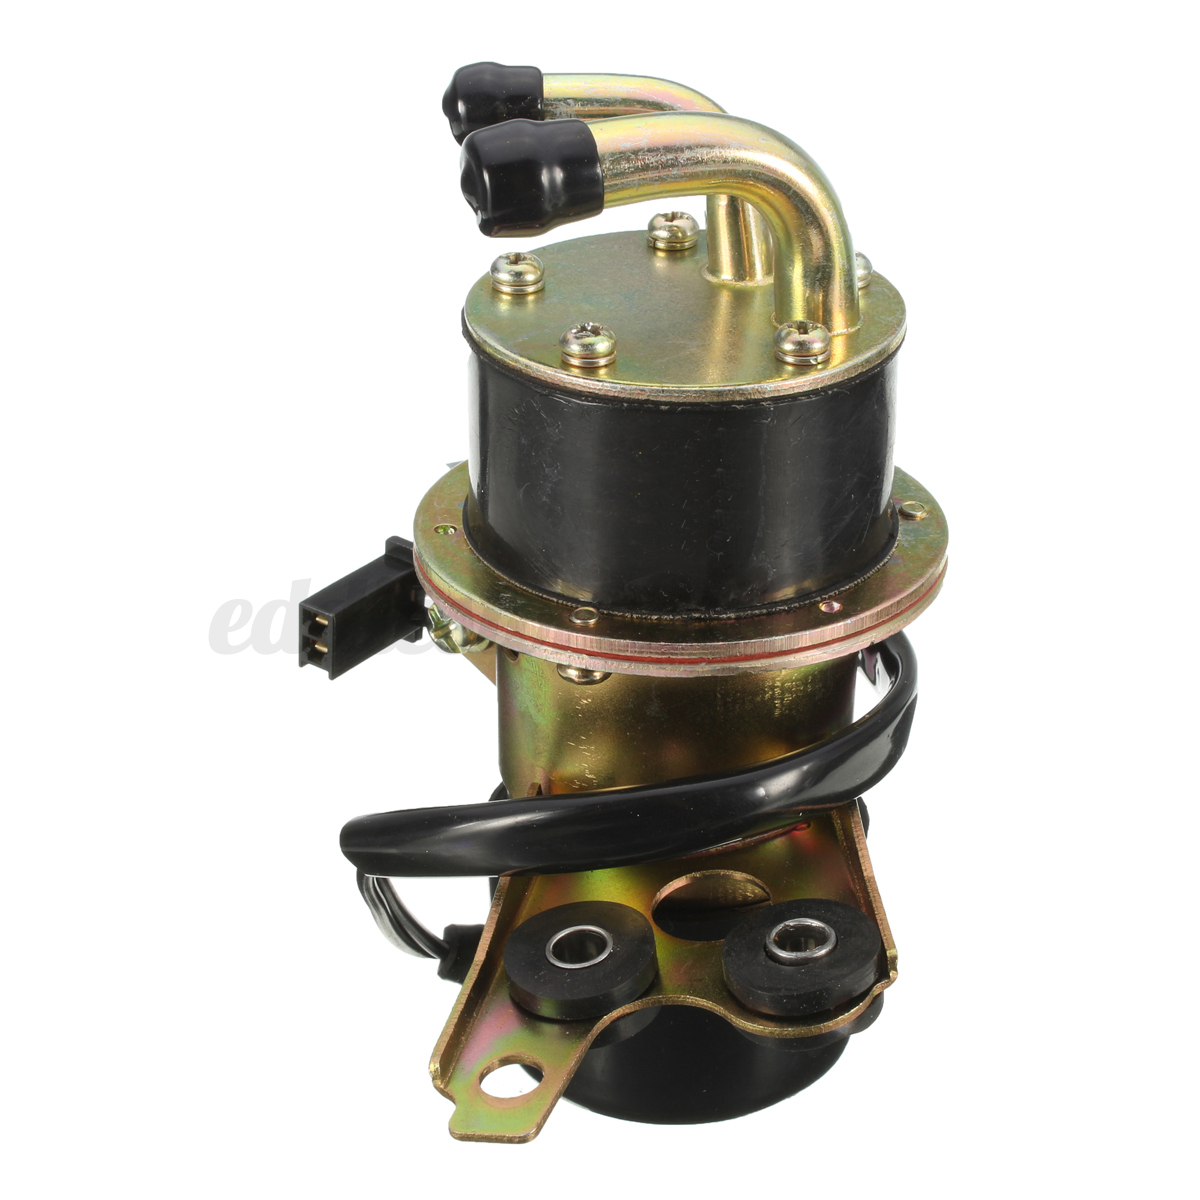 Fuel Pump Replacement : Replacement fuel pump tank assembly for yamaha yzf r